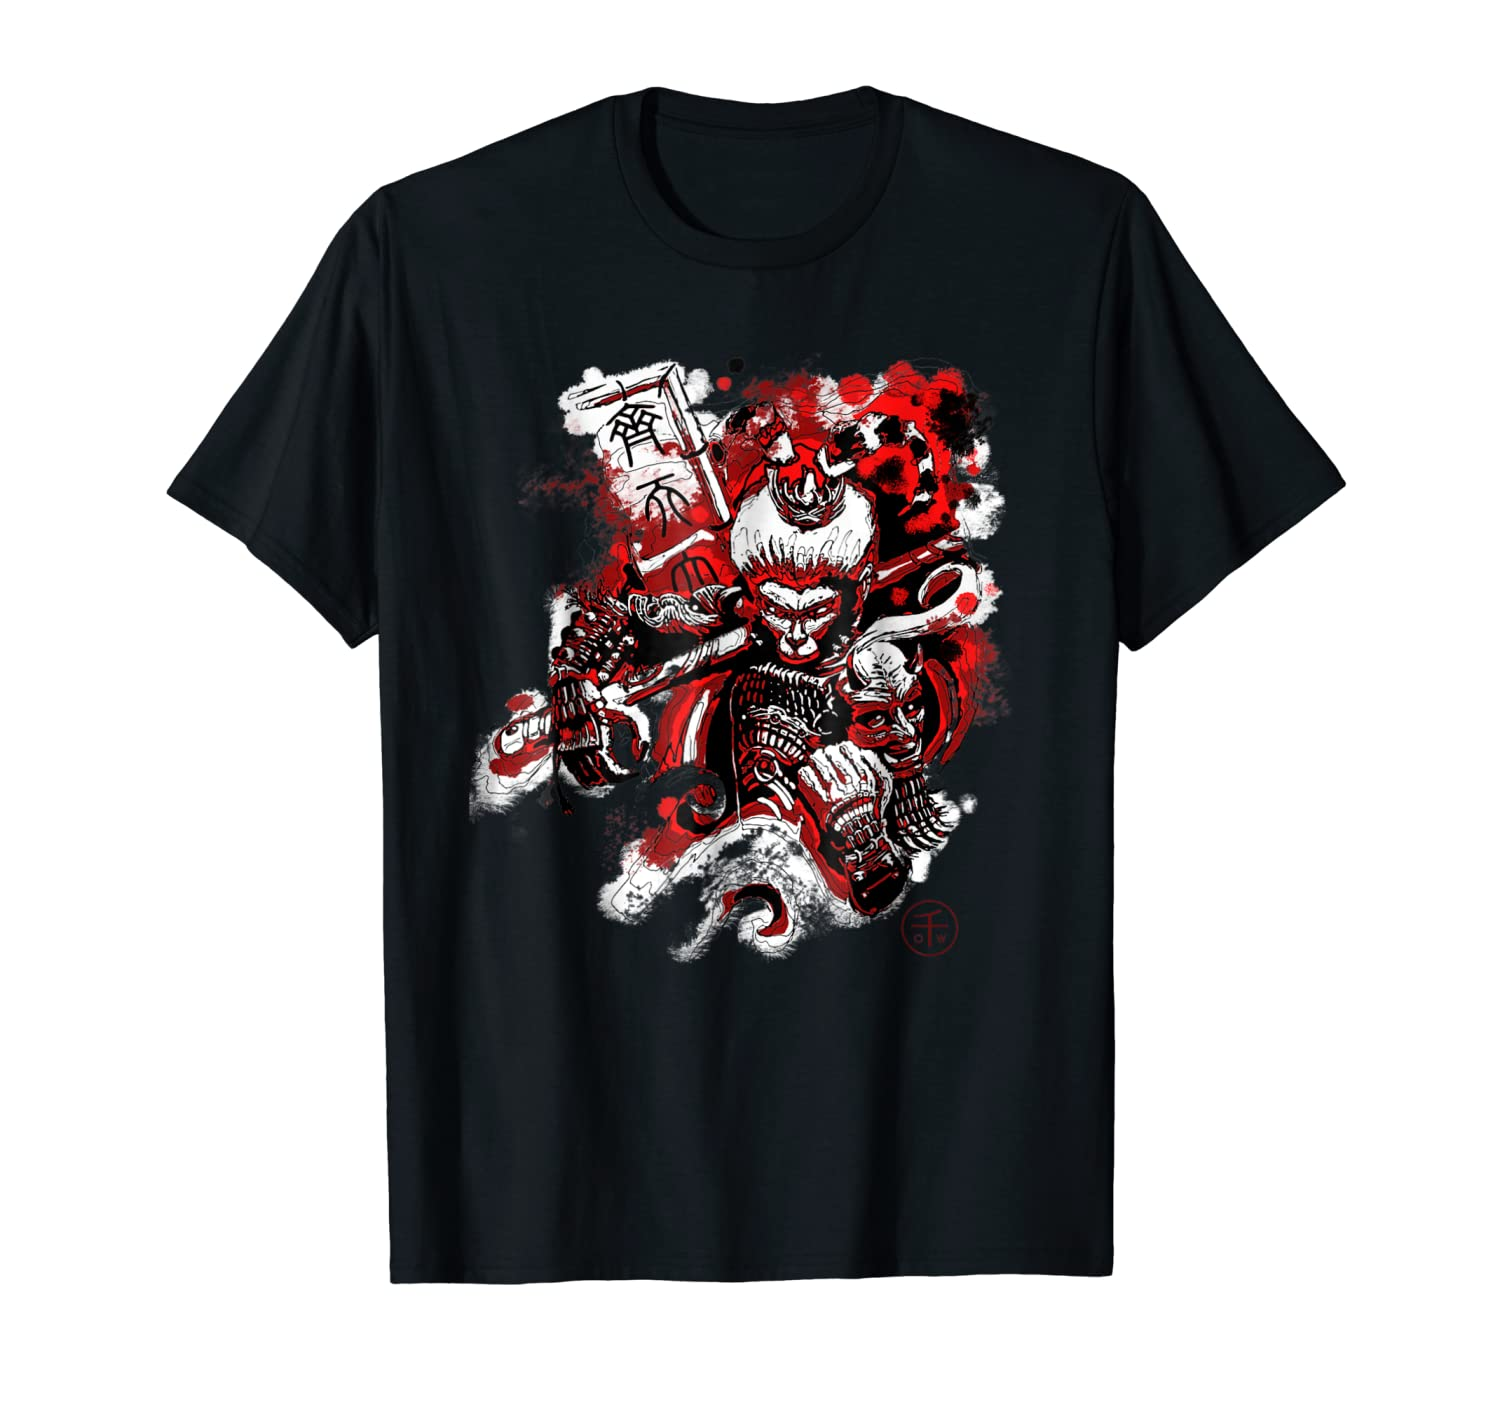 eb6a625b47 Amazon.com: Raging Monkey King: Clothing